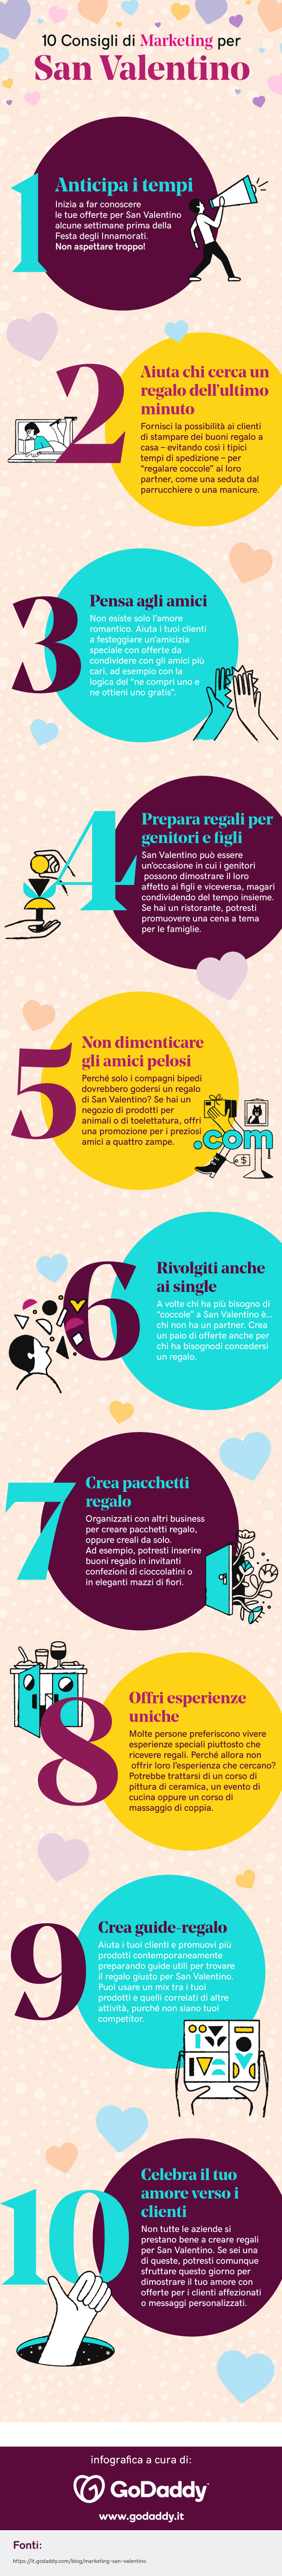 Consigli di marketing per San Valentino: l'infografica di GoDaddy